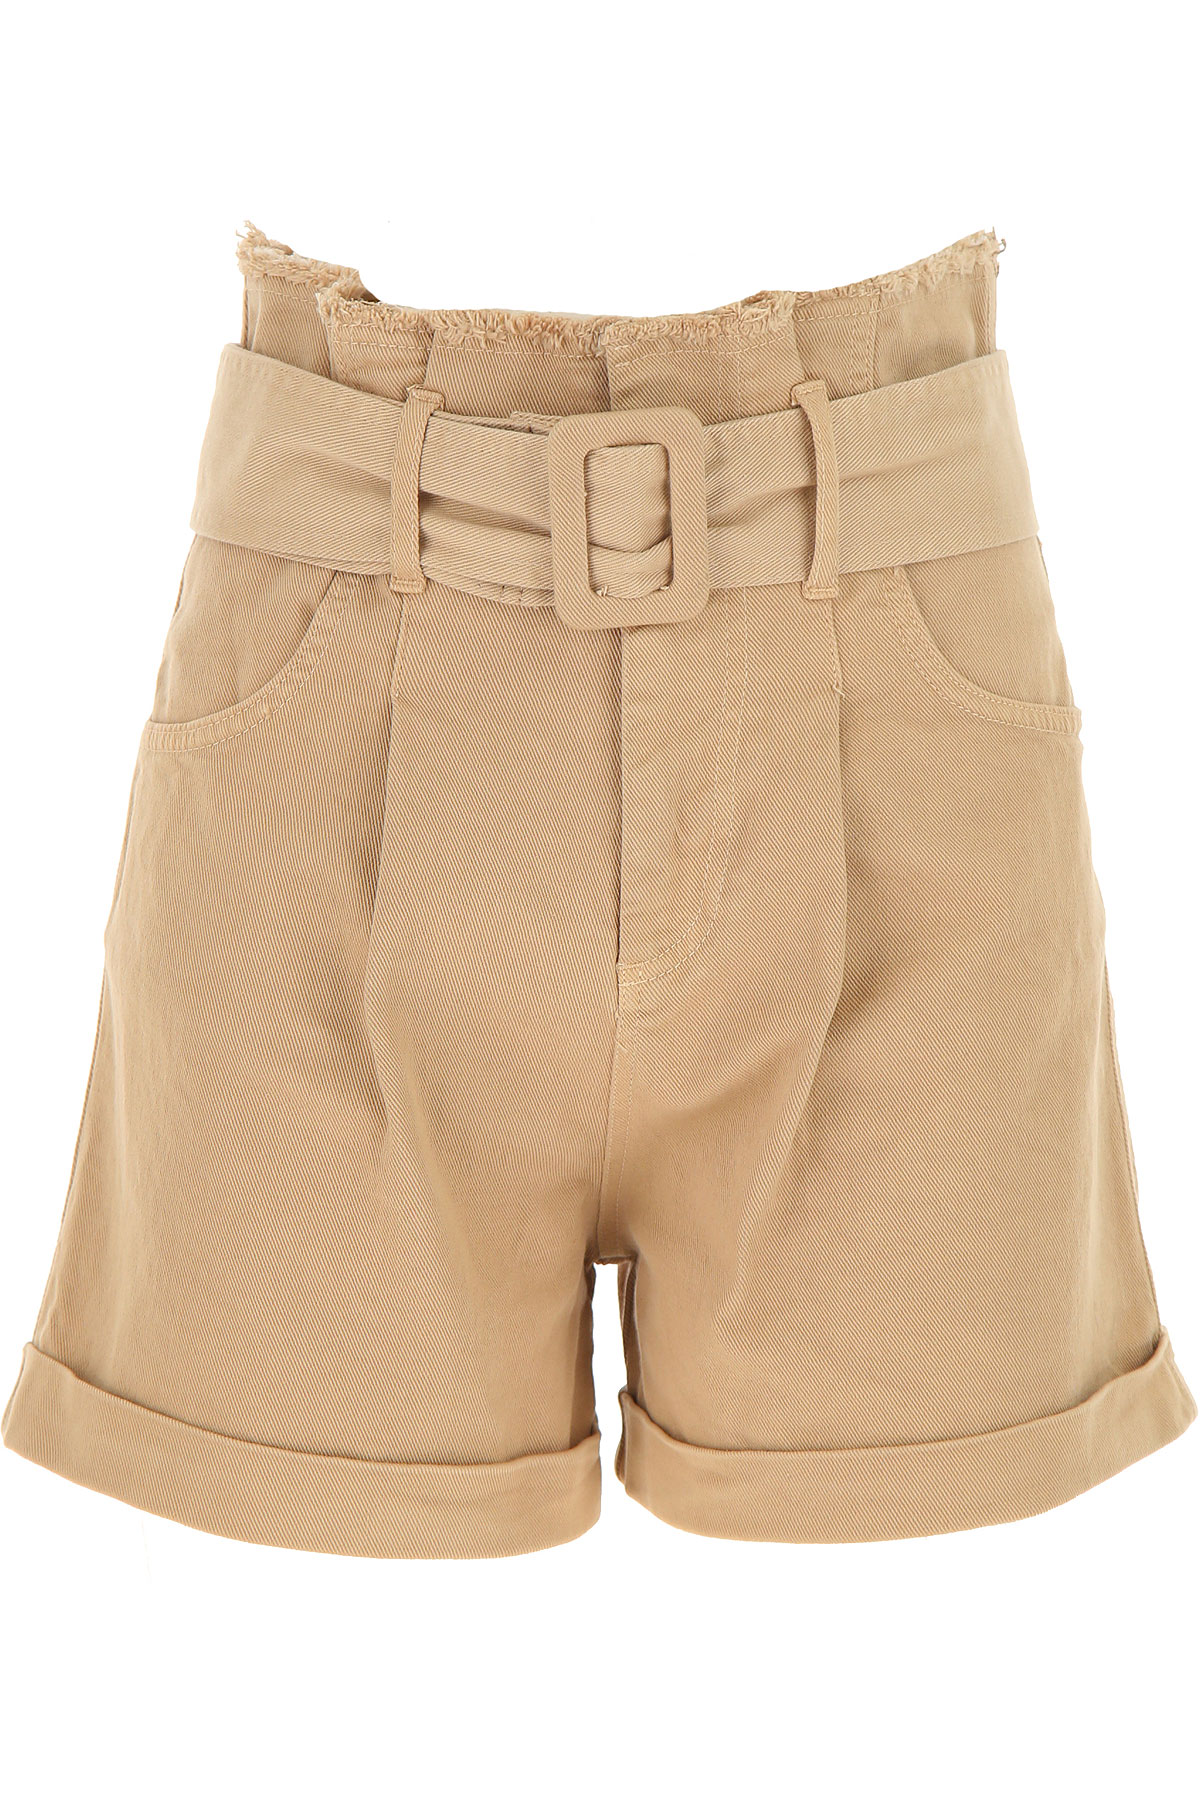 Federica Tosi Shorts for Women On Sale, Beige, Cotton, 2019, 26 4